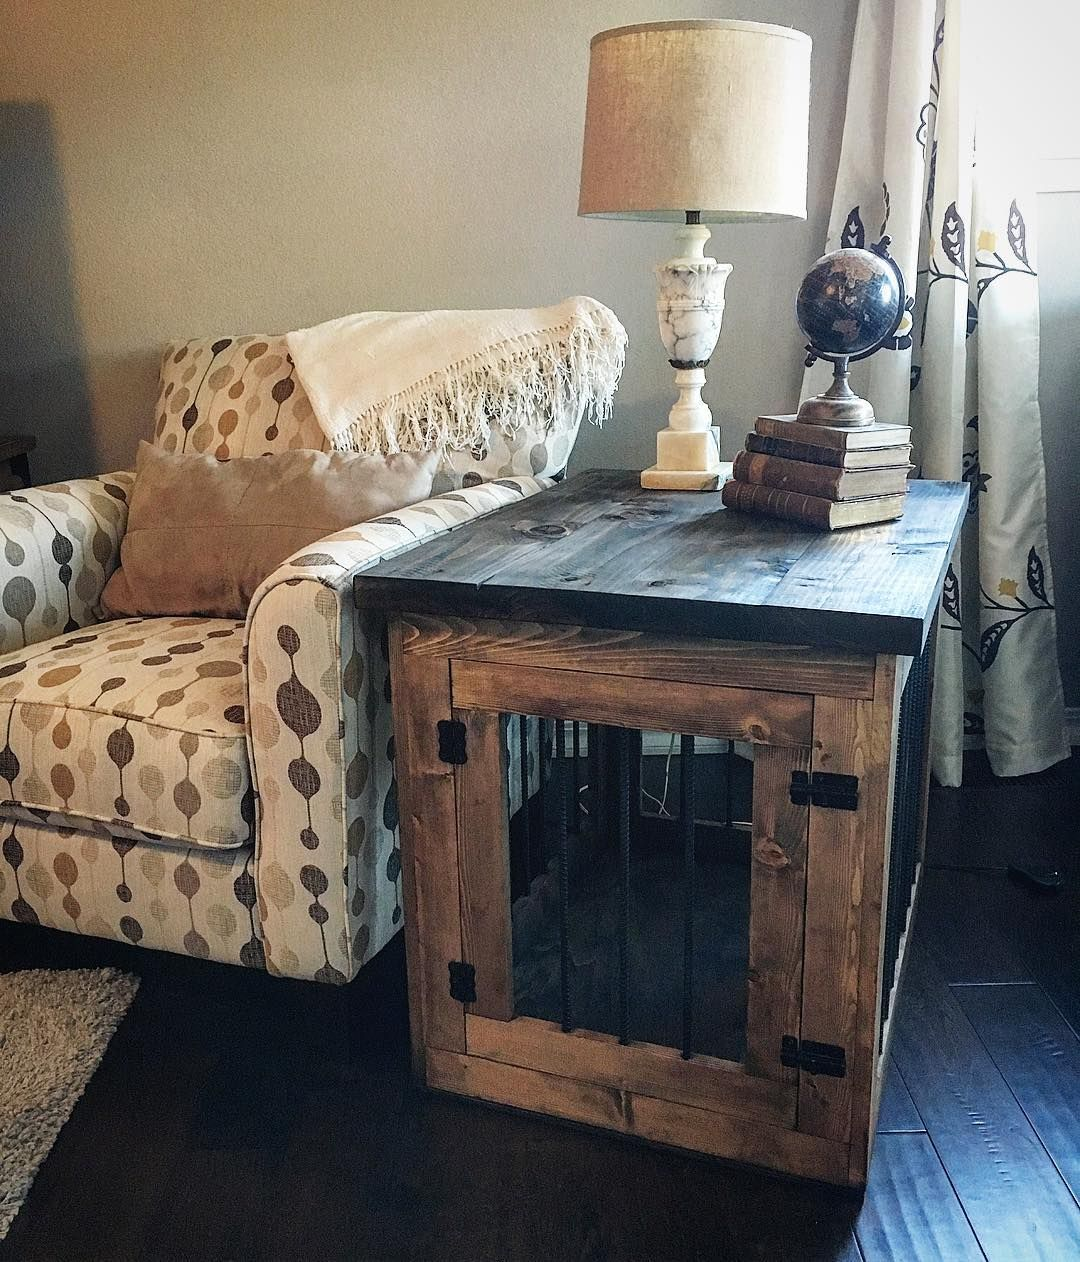 stylish dog end table how turn old into wood pet diy furnishing idea plan with music soundproof land made from out high tables beds amazing distressed farmhouse kitchen green lazy